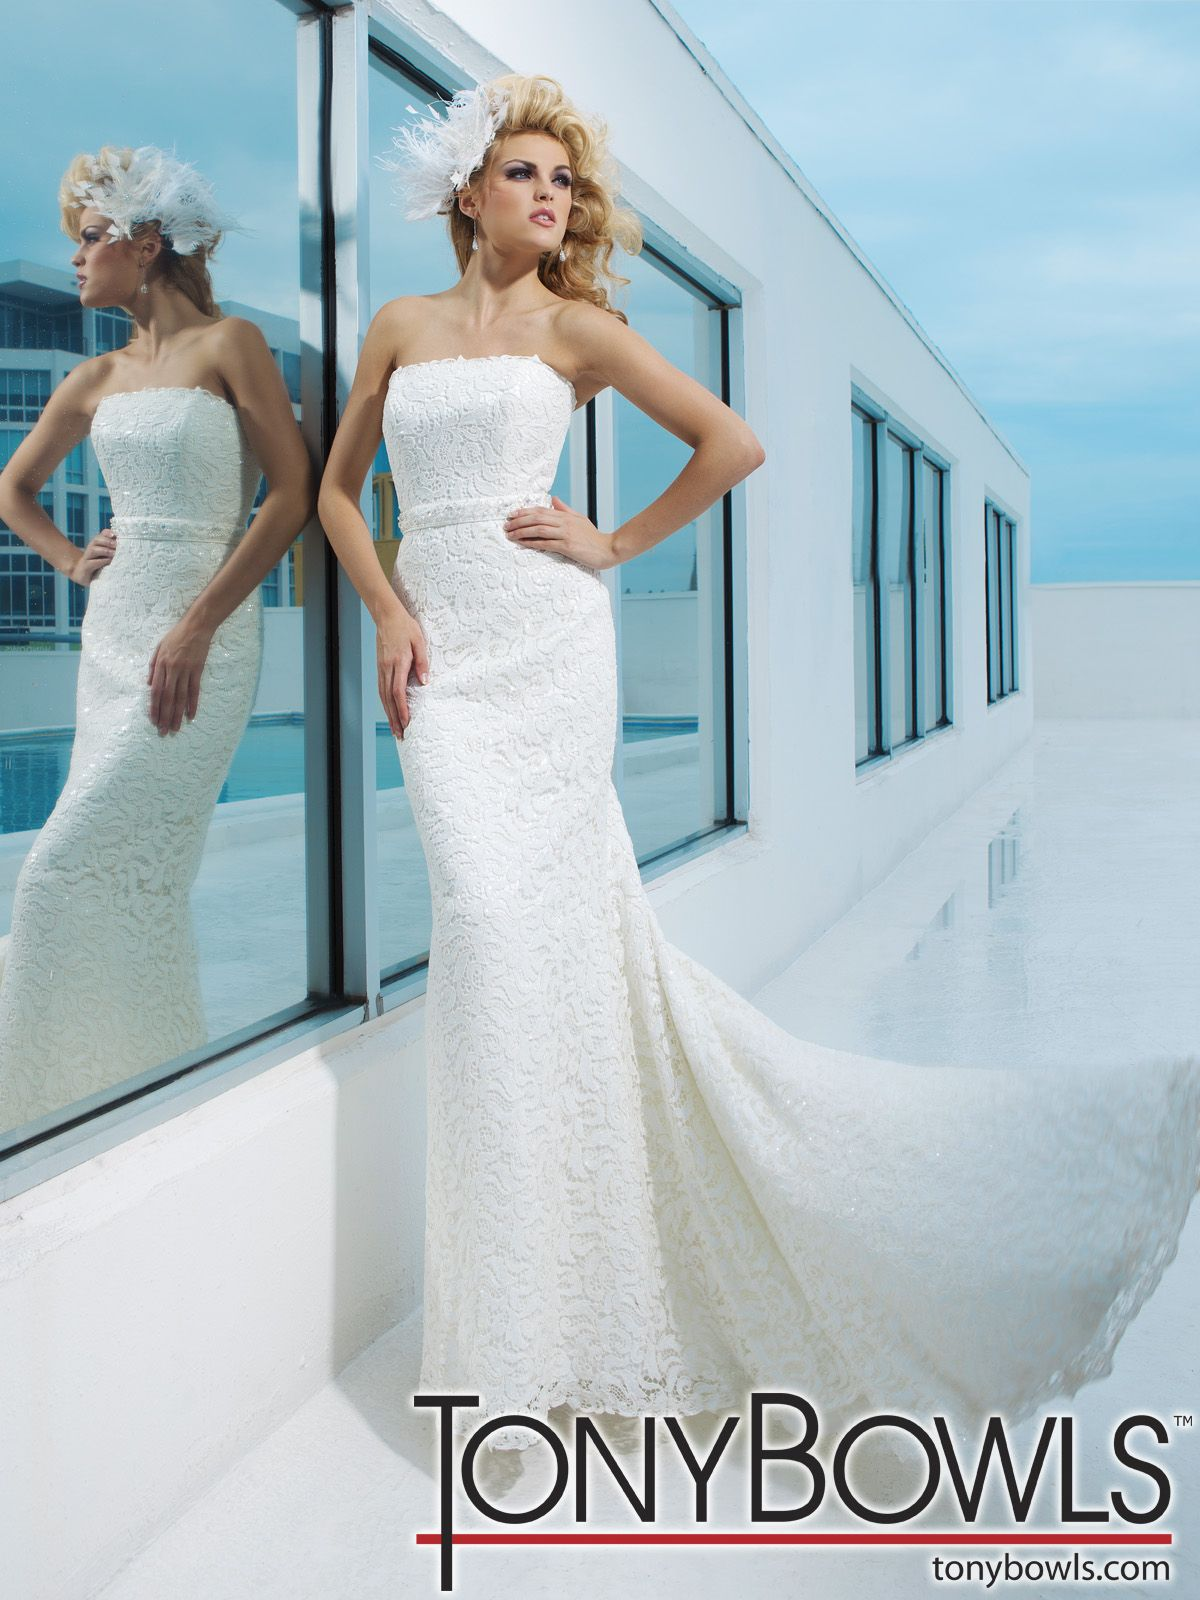 Strapless venise lace over sequined satin modified mermaid gown with